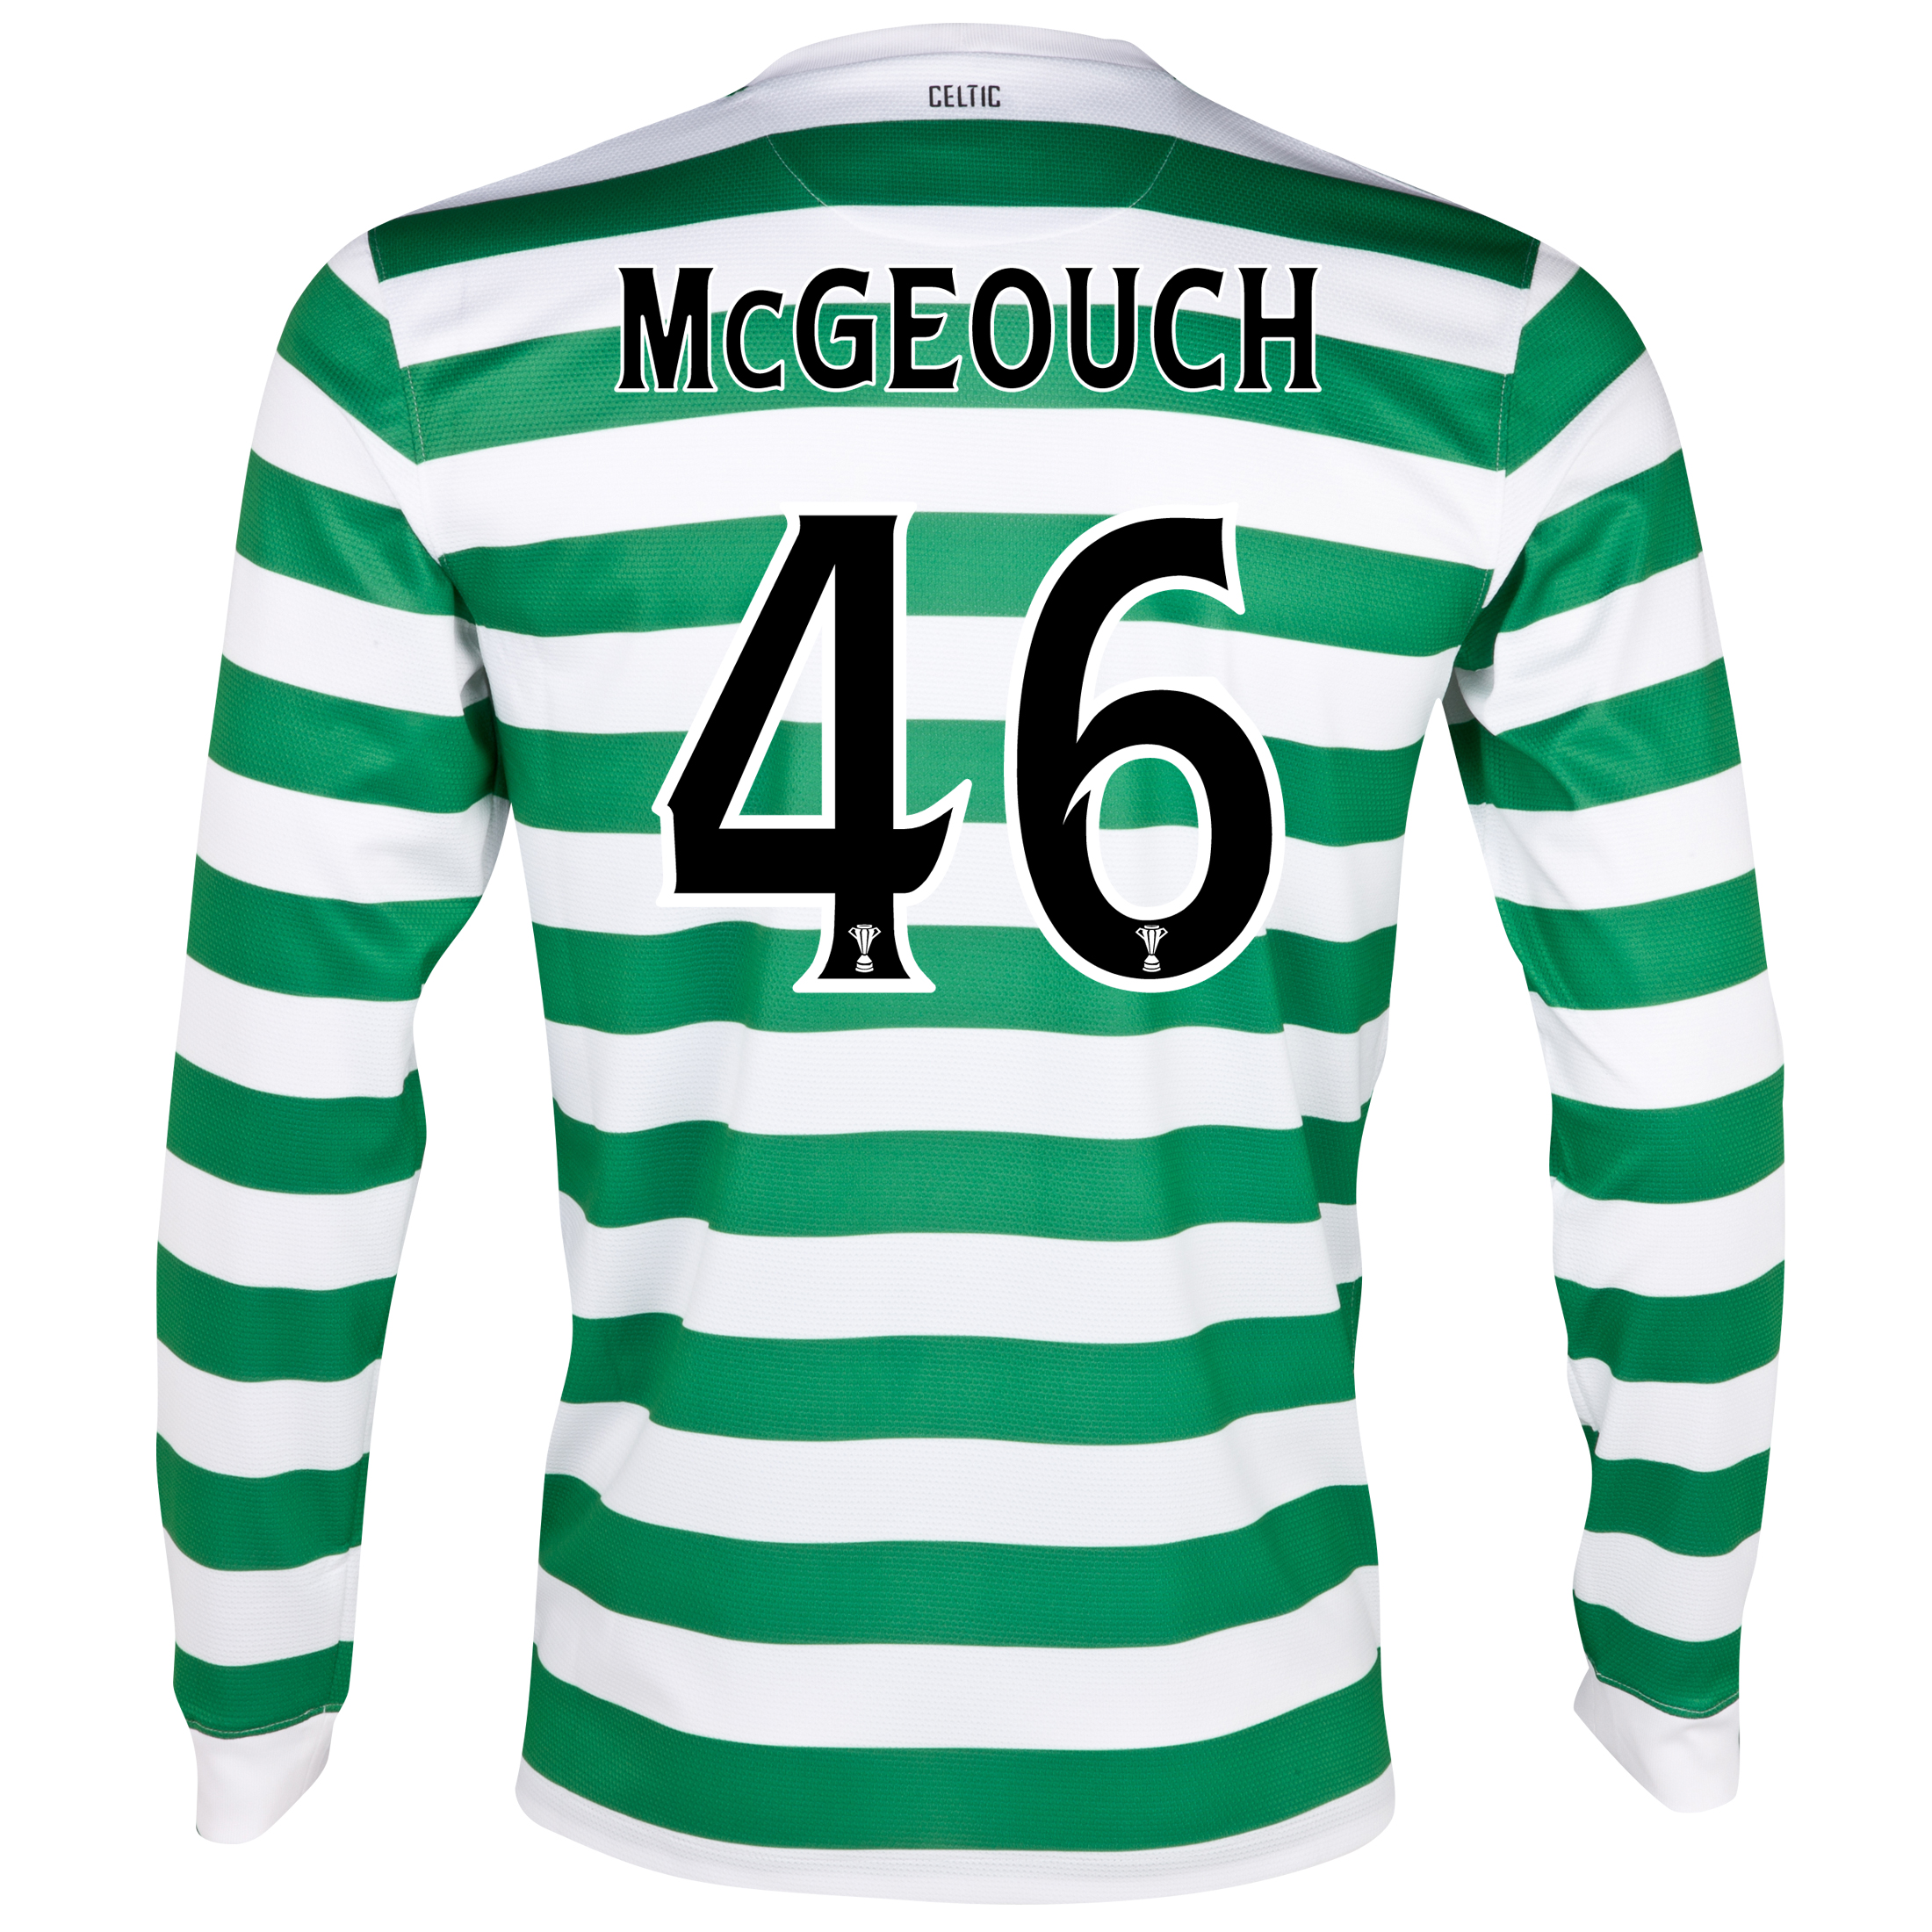 Celtic Home Shirt 2012/13 - Long Sleeved with McGeouch  46 printing